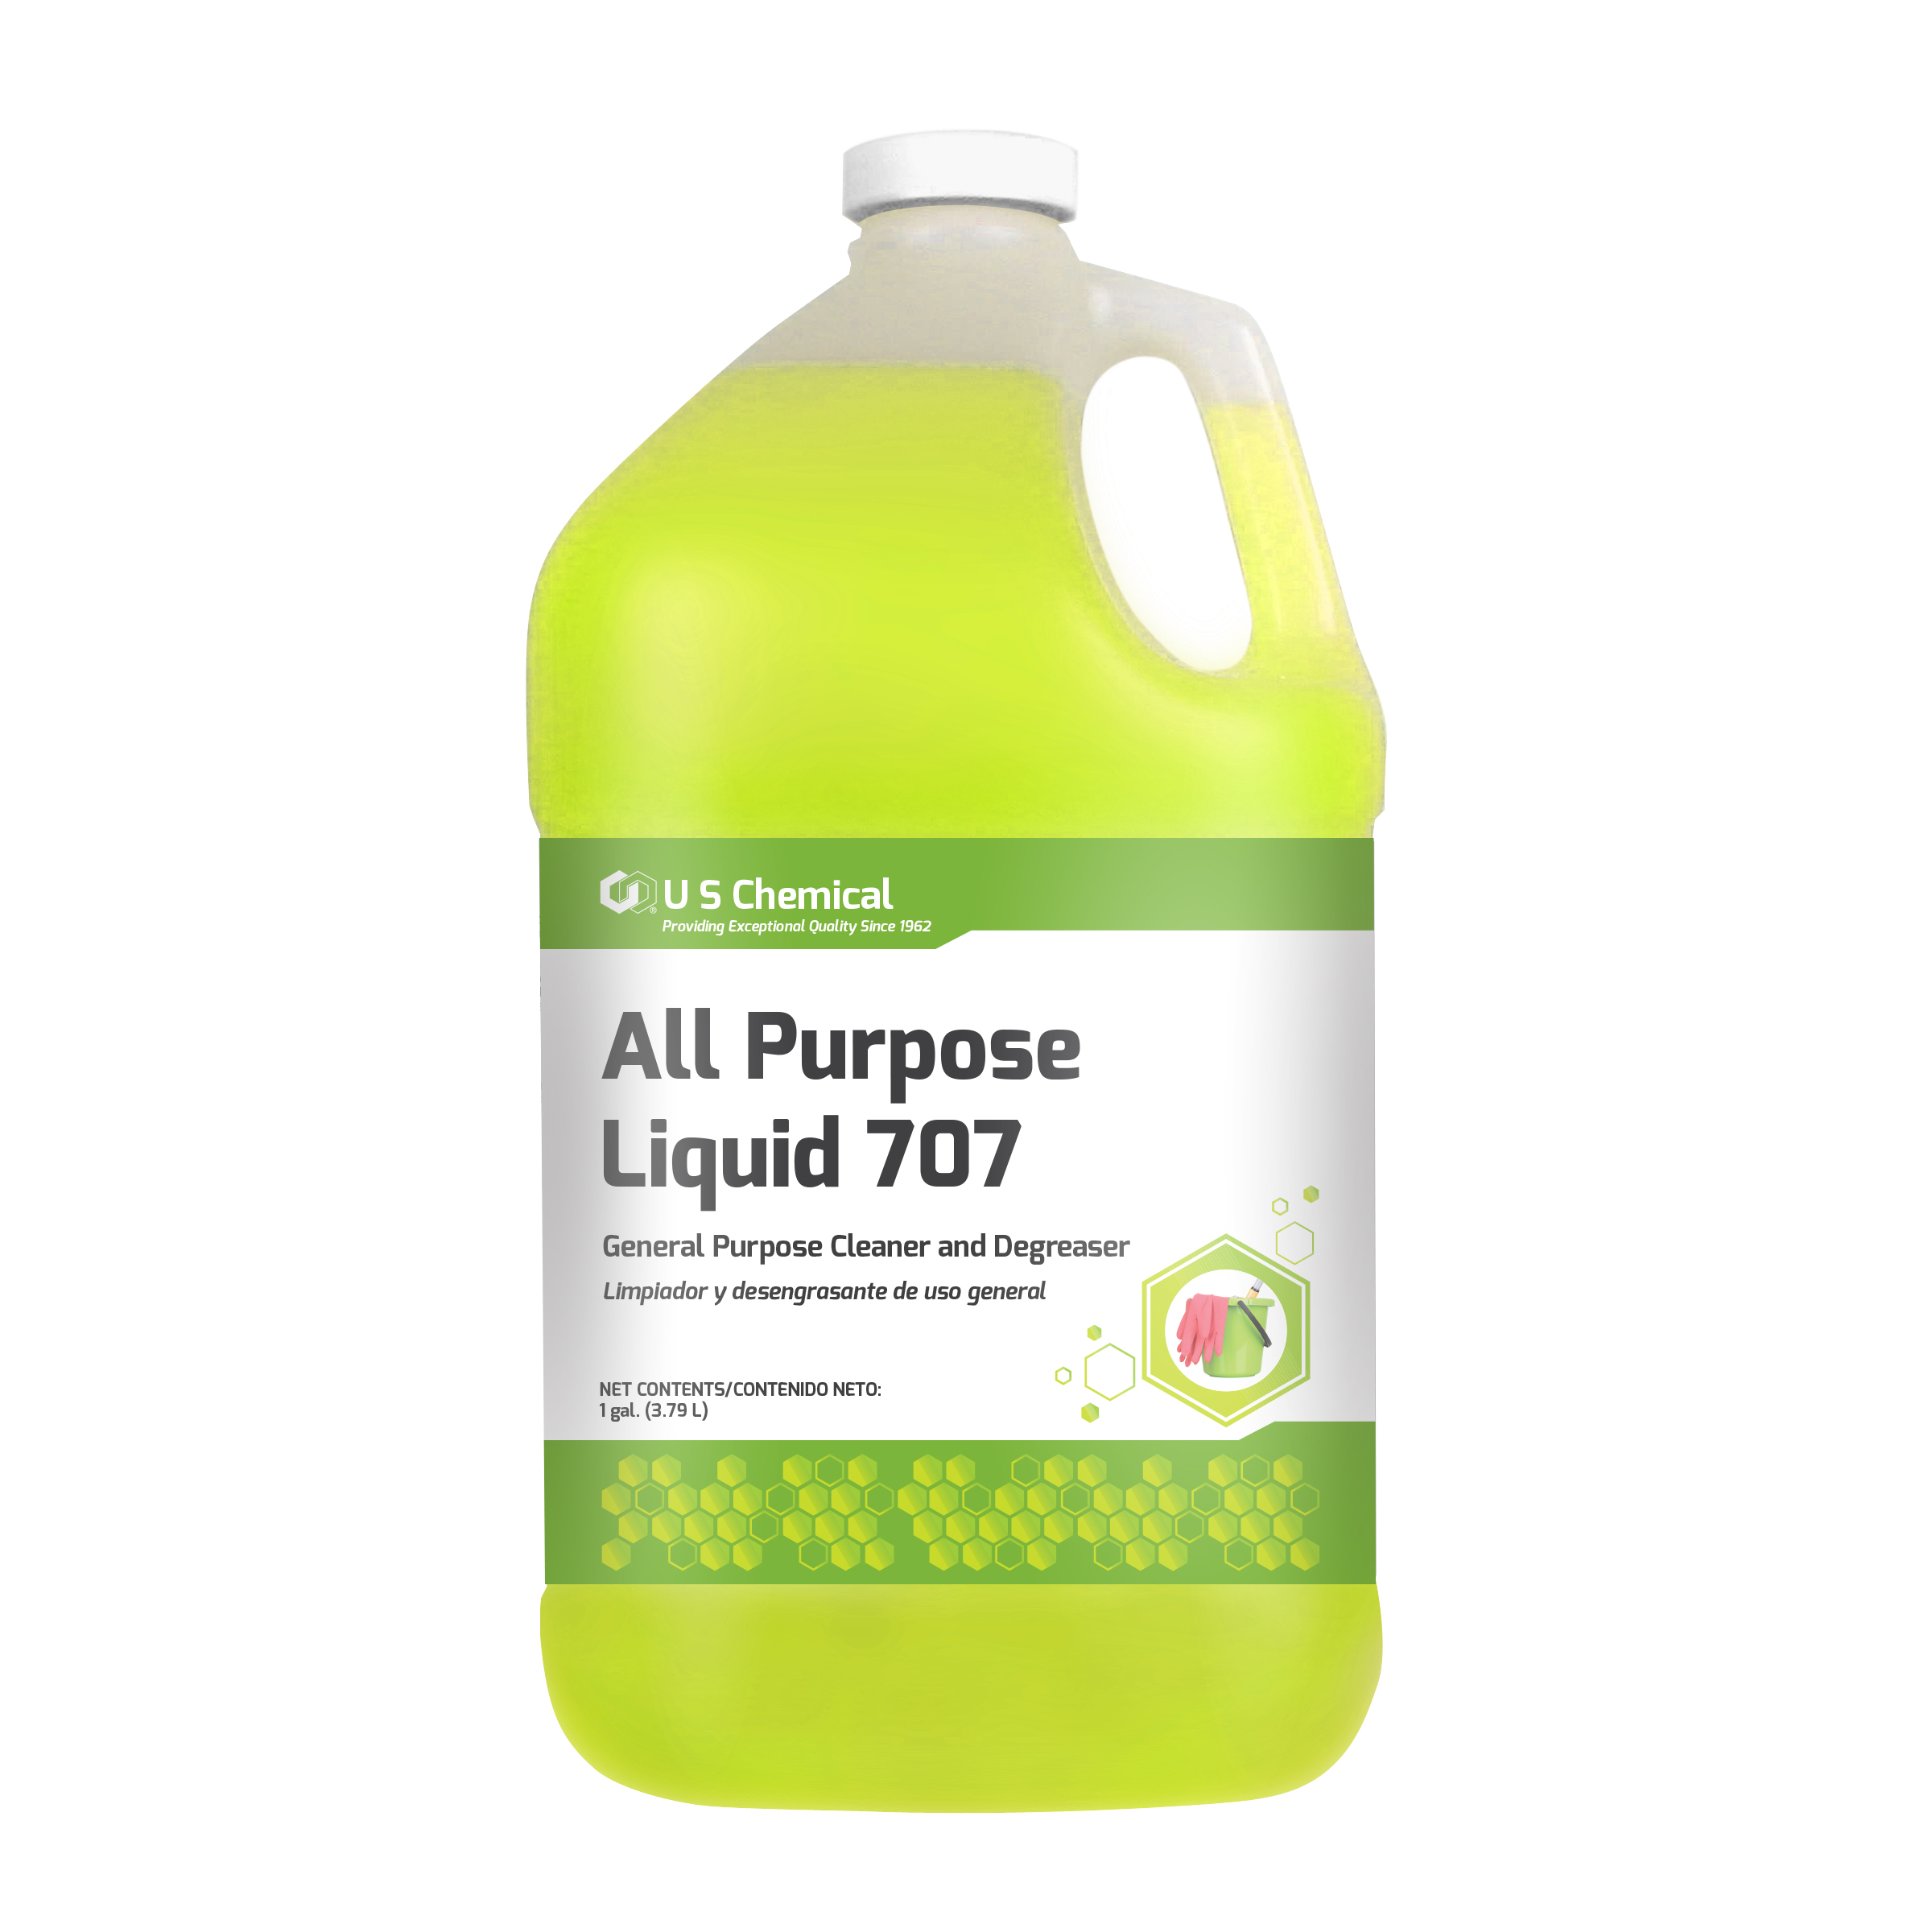 057744_057752_ALL_PURPOSE_LIQUID_707_1GA